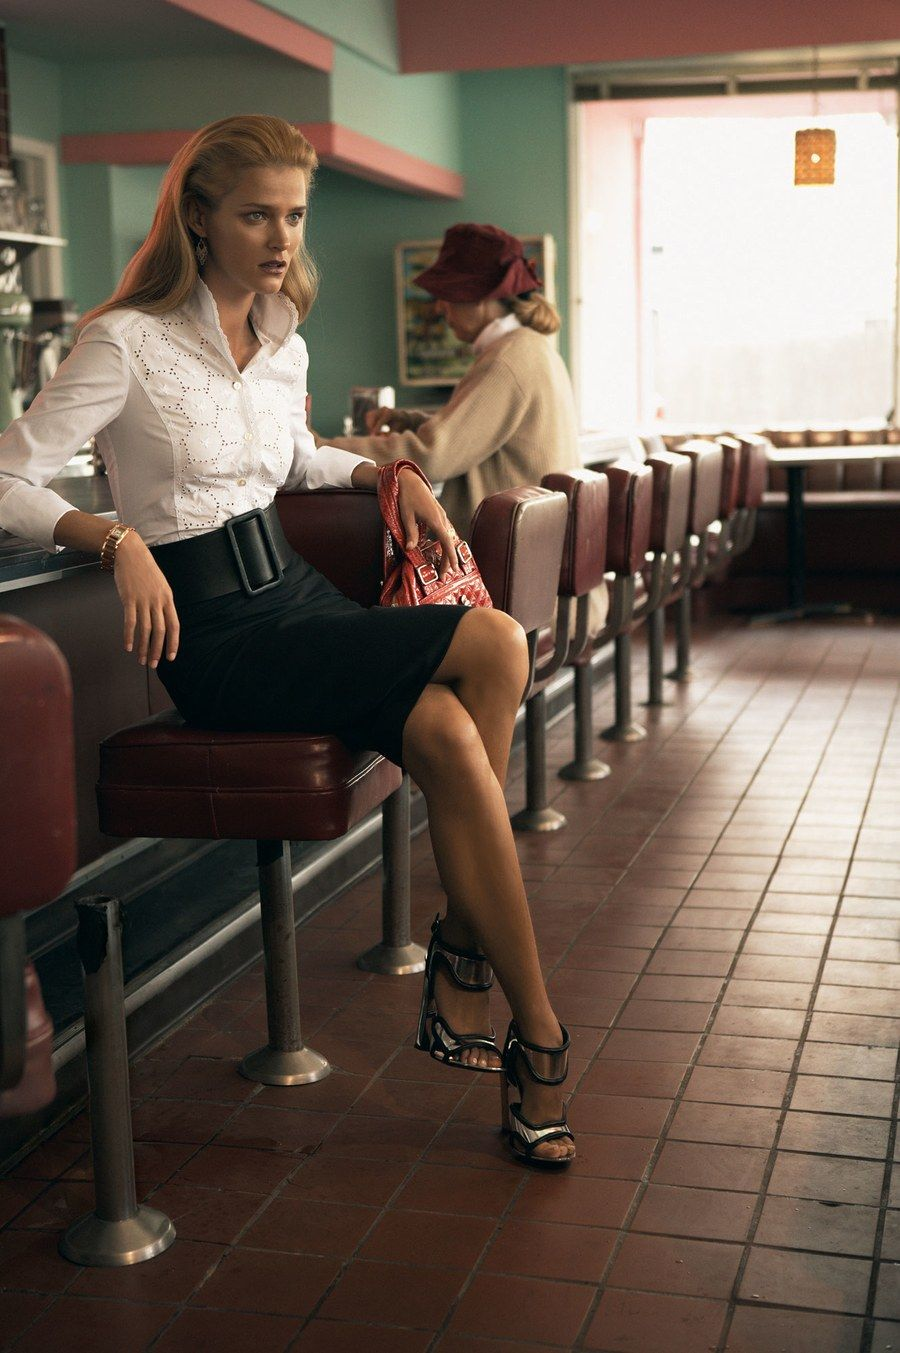 The 7 Coolest Classic Diners In America Vintage Cafe Design Vogue American Diner